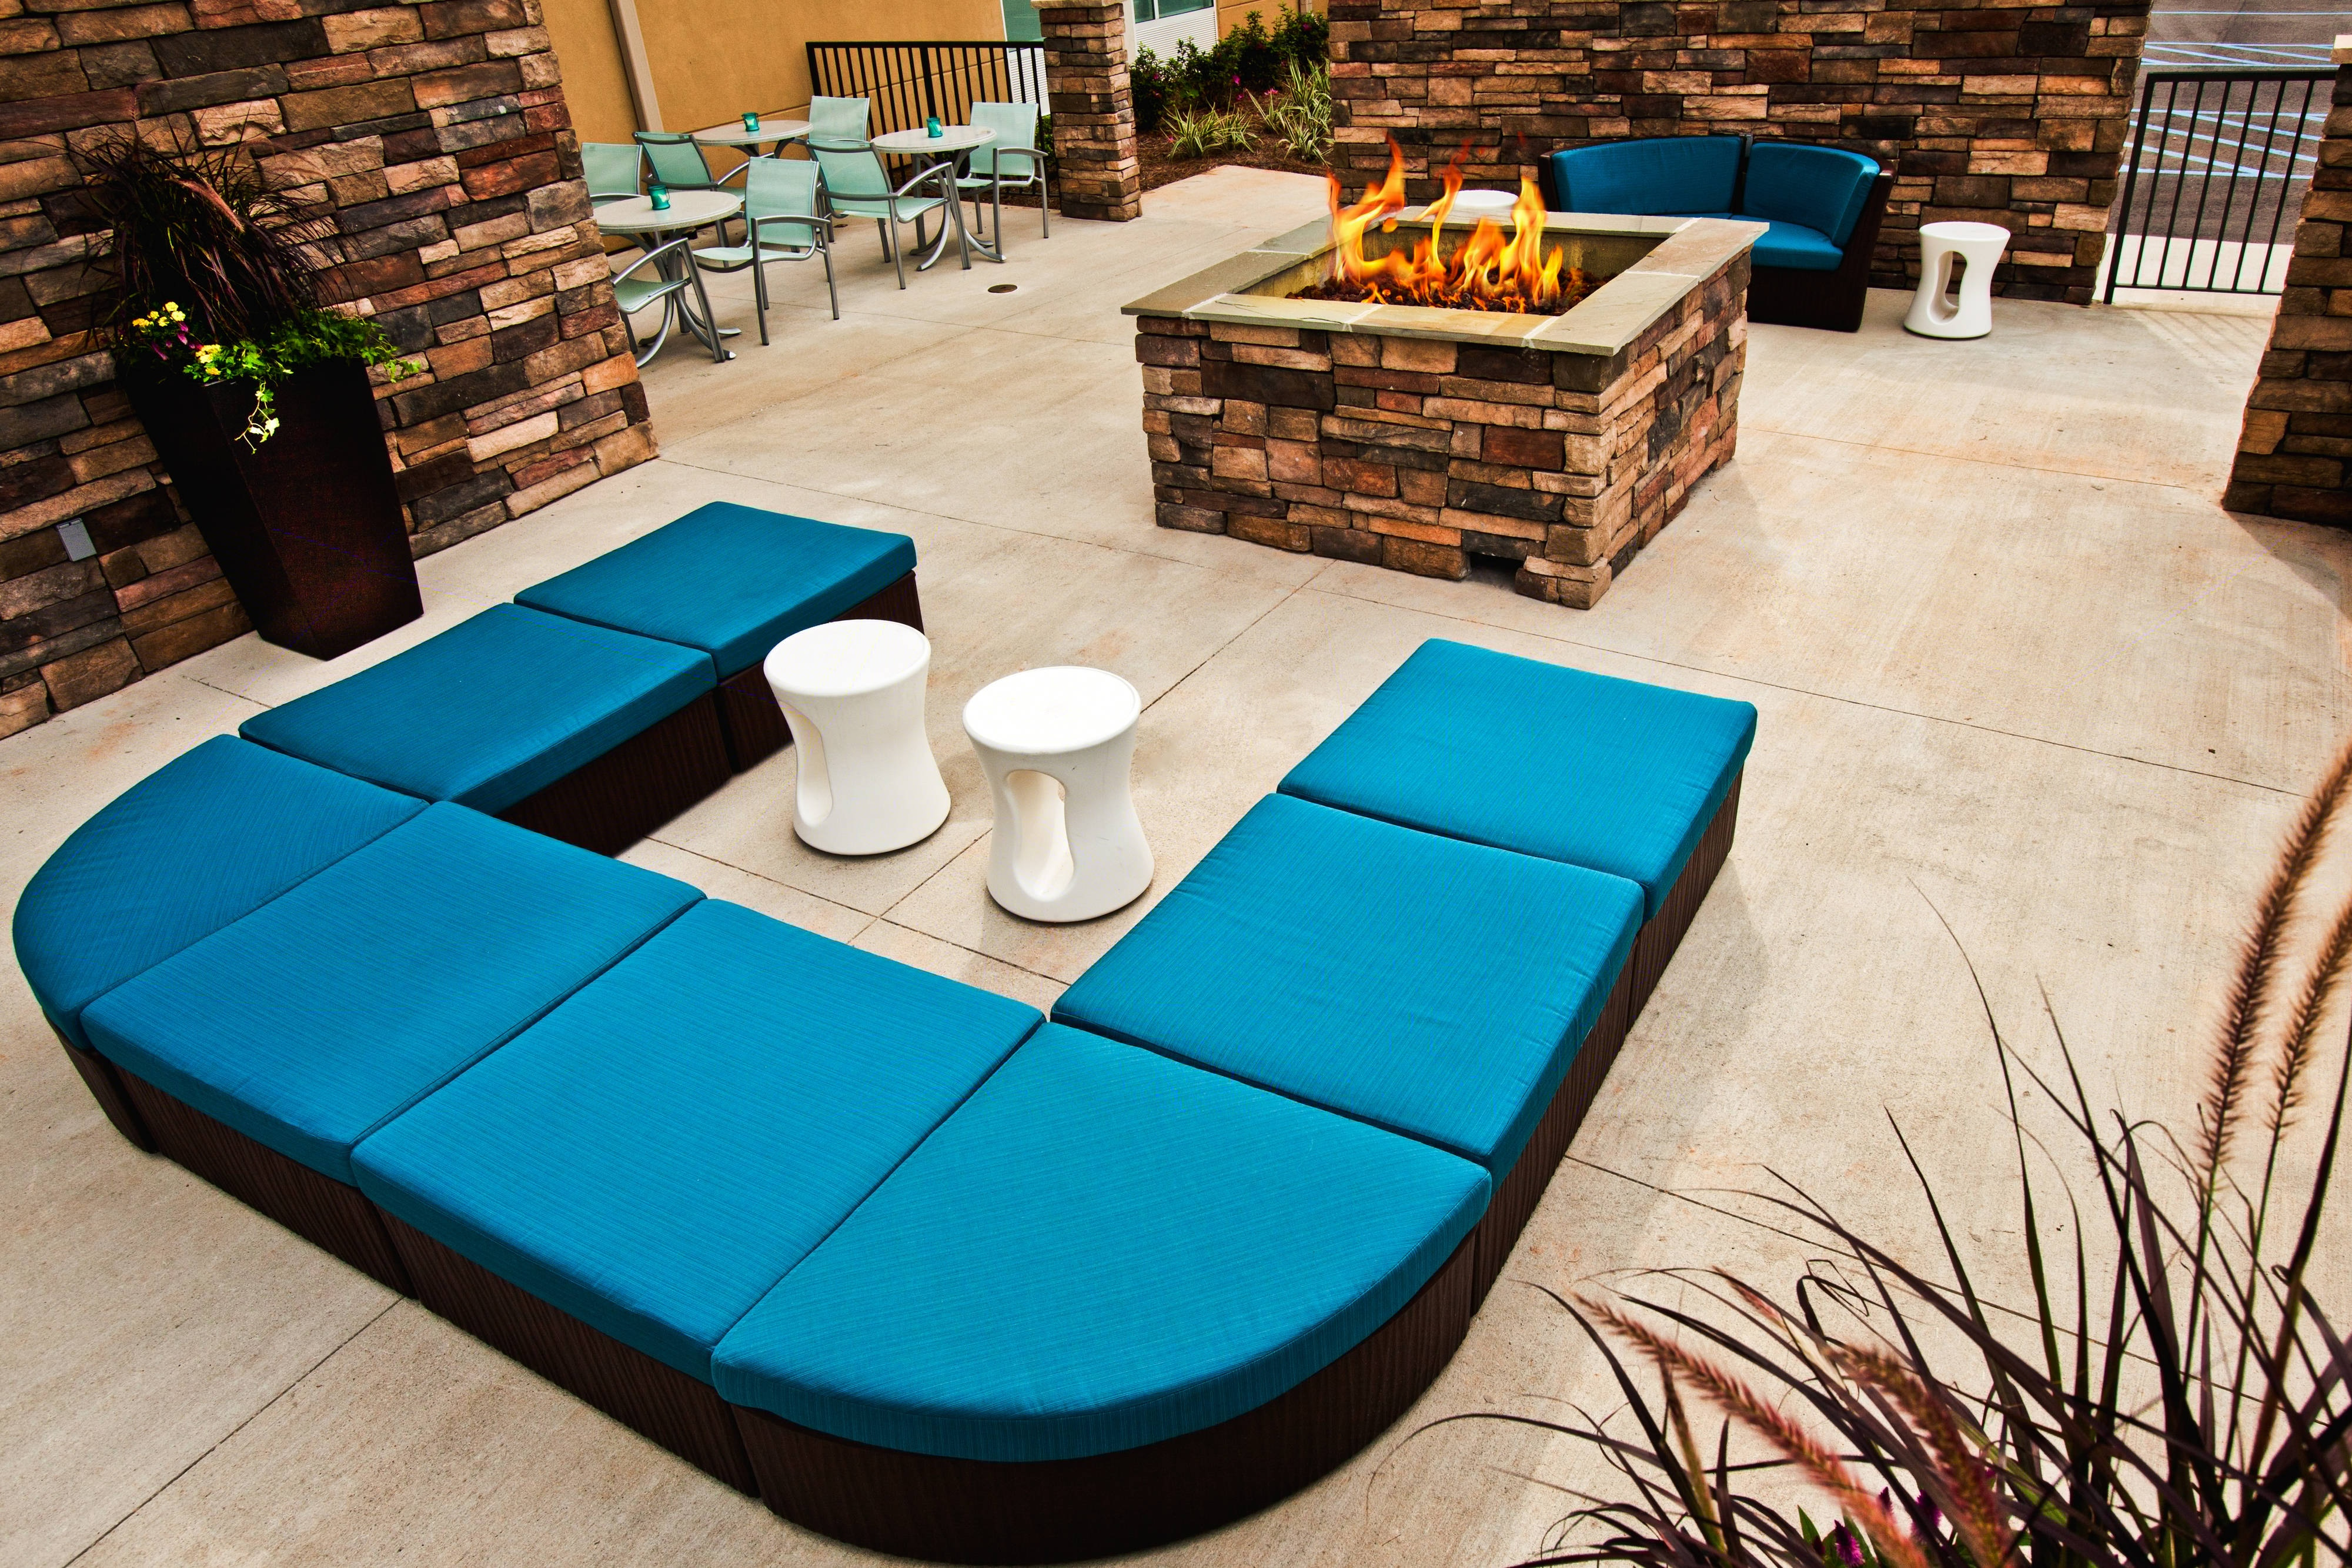 Leisure Deck with Fire Pit